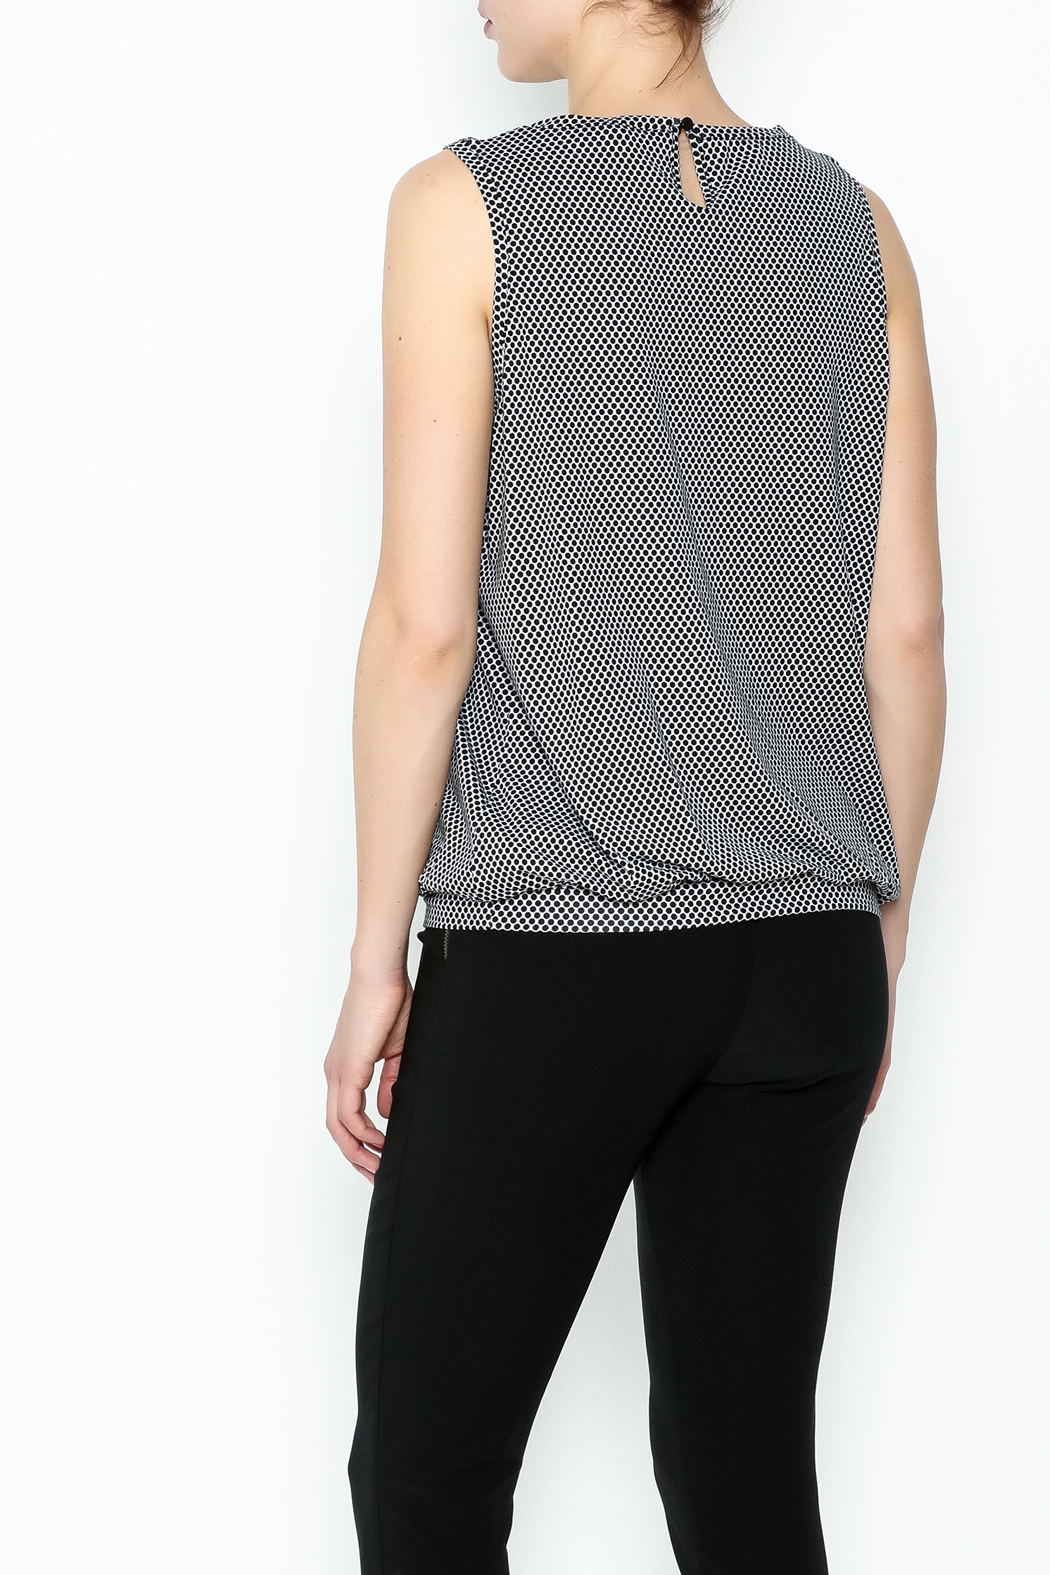 Yest Sleeveless Banded Top - Back Cropped Image